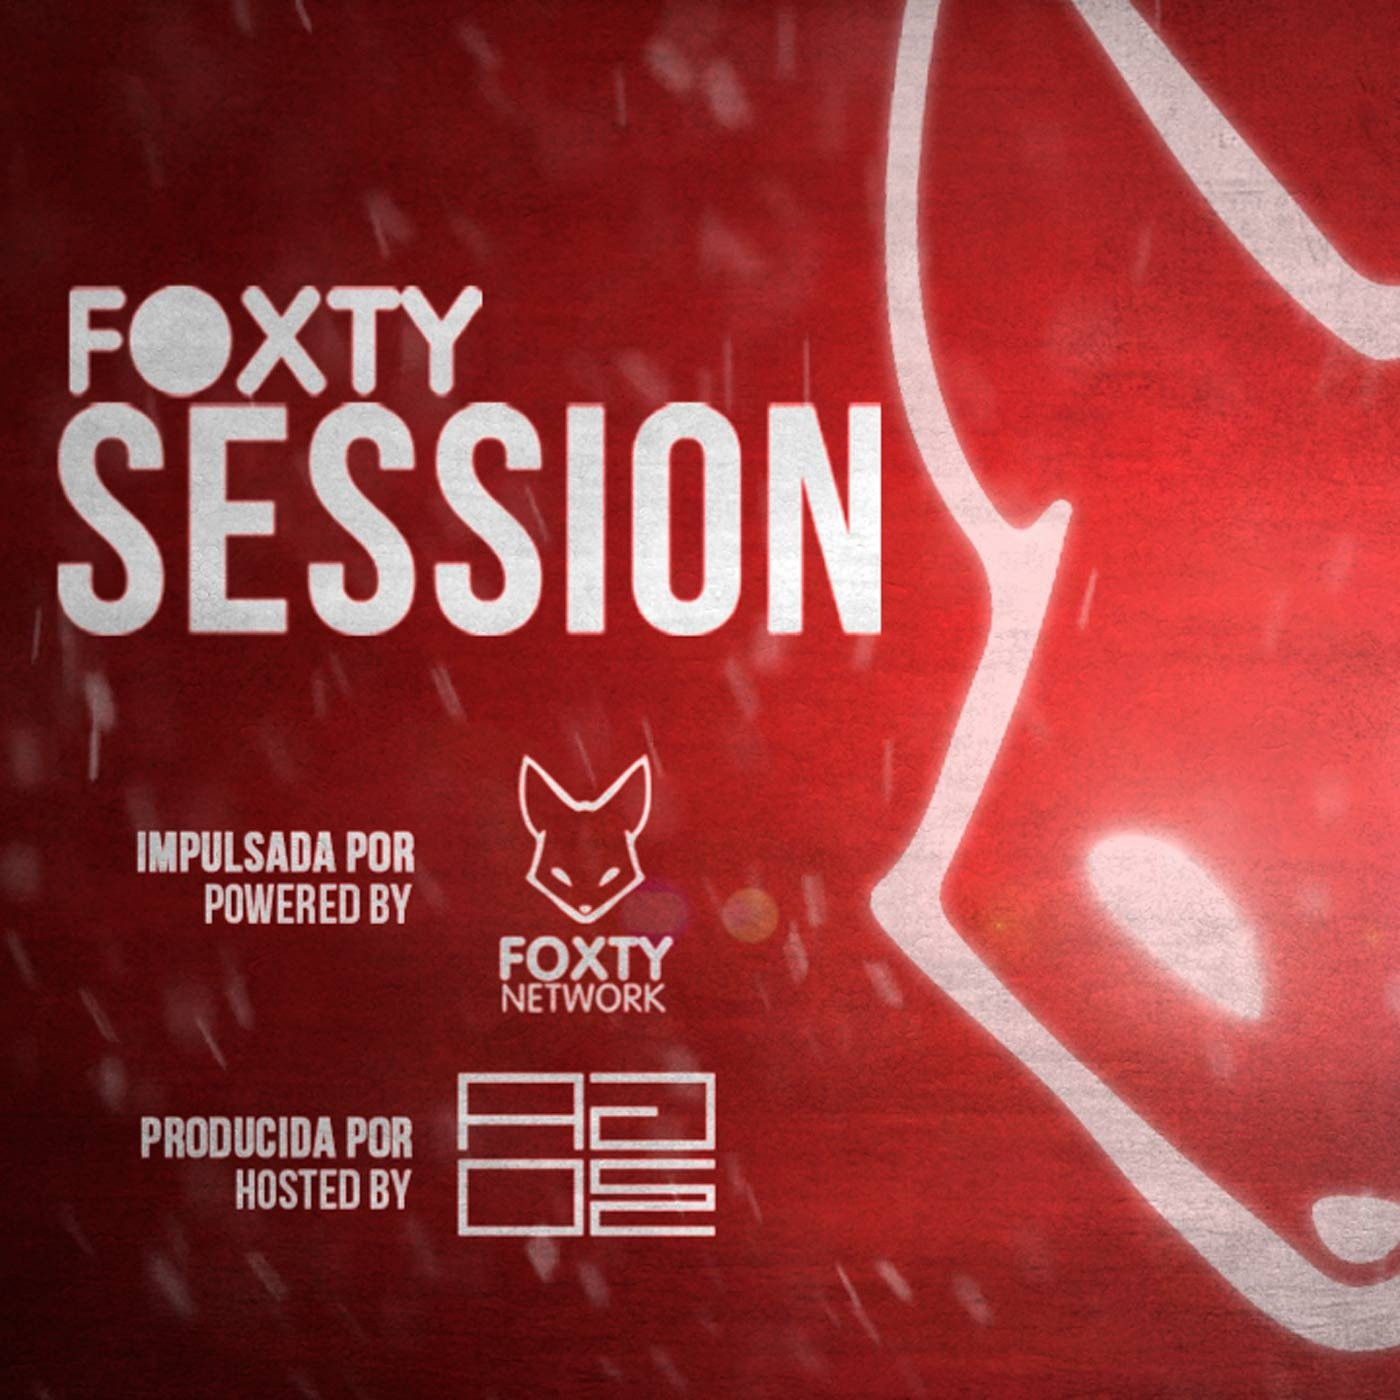 <![CDATA[Foxty Session]]>